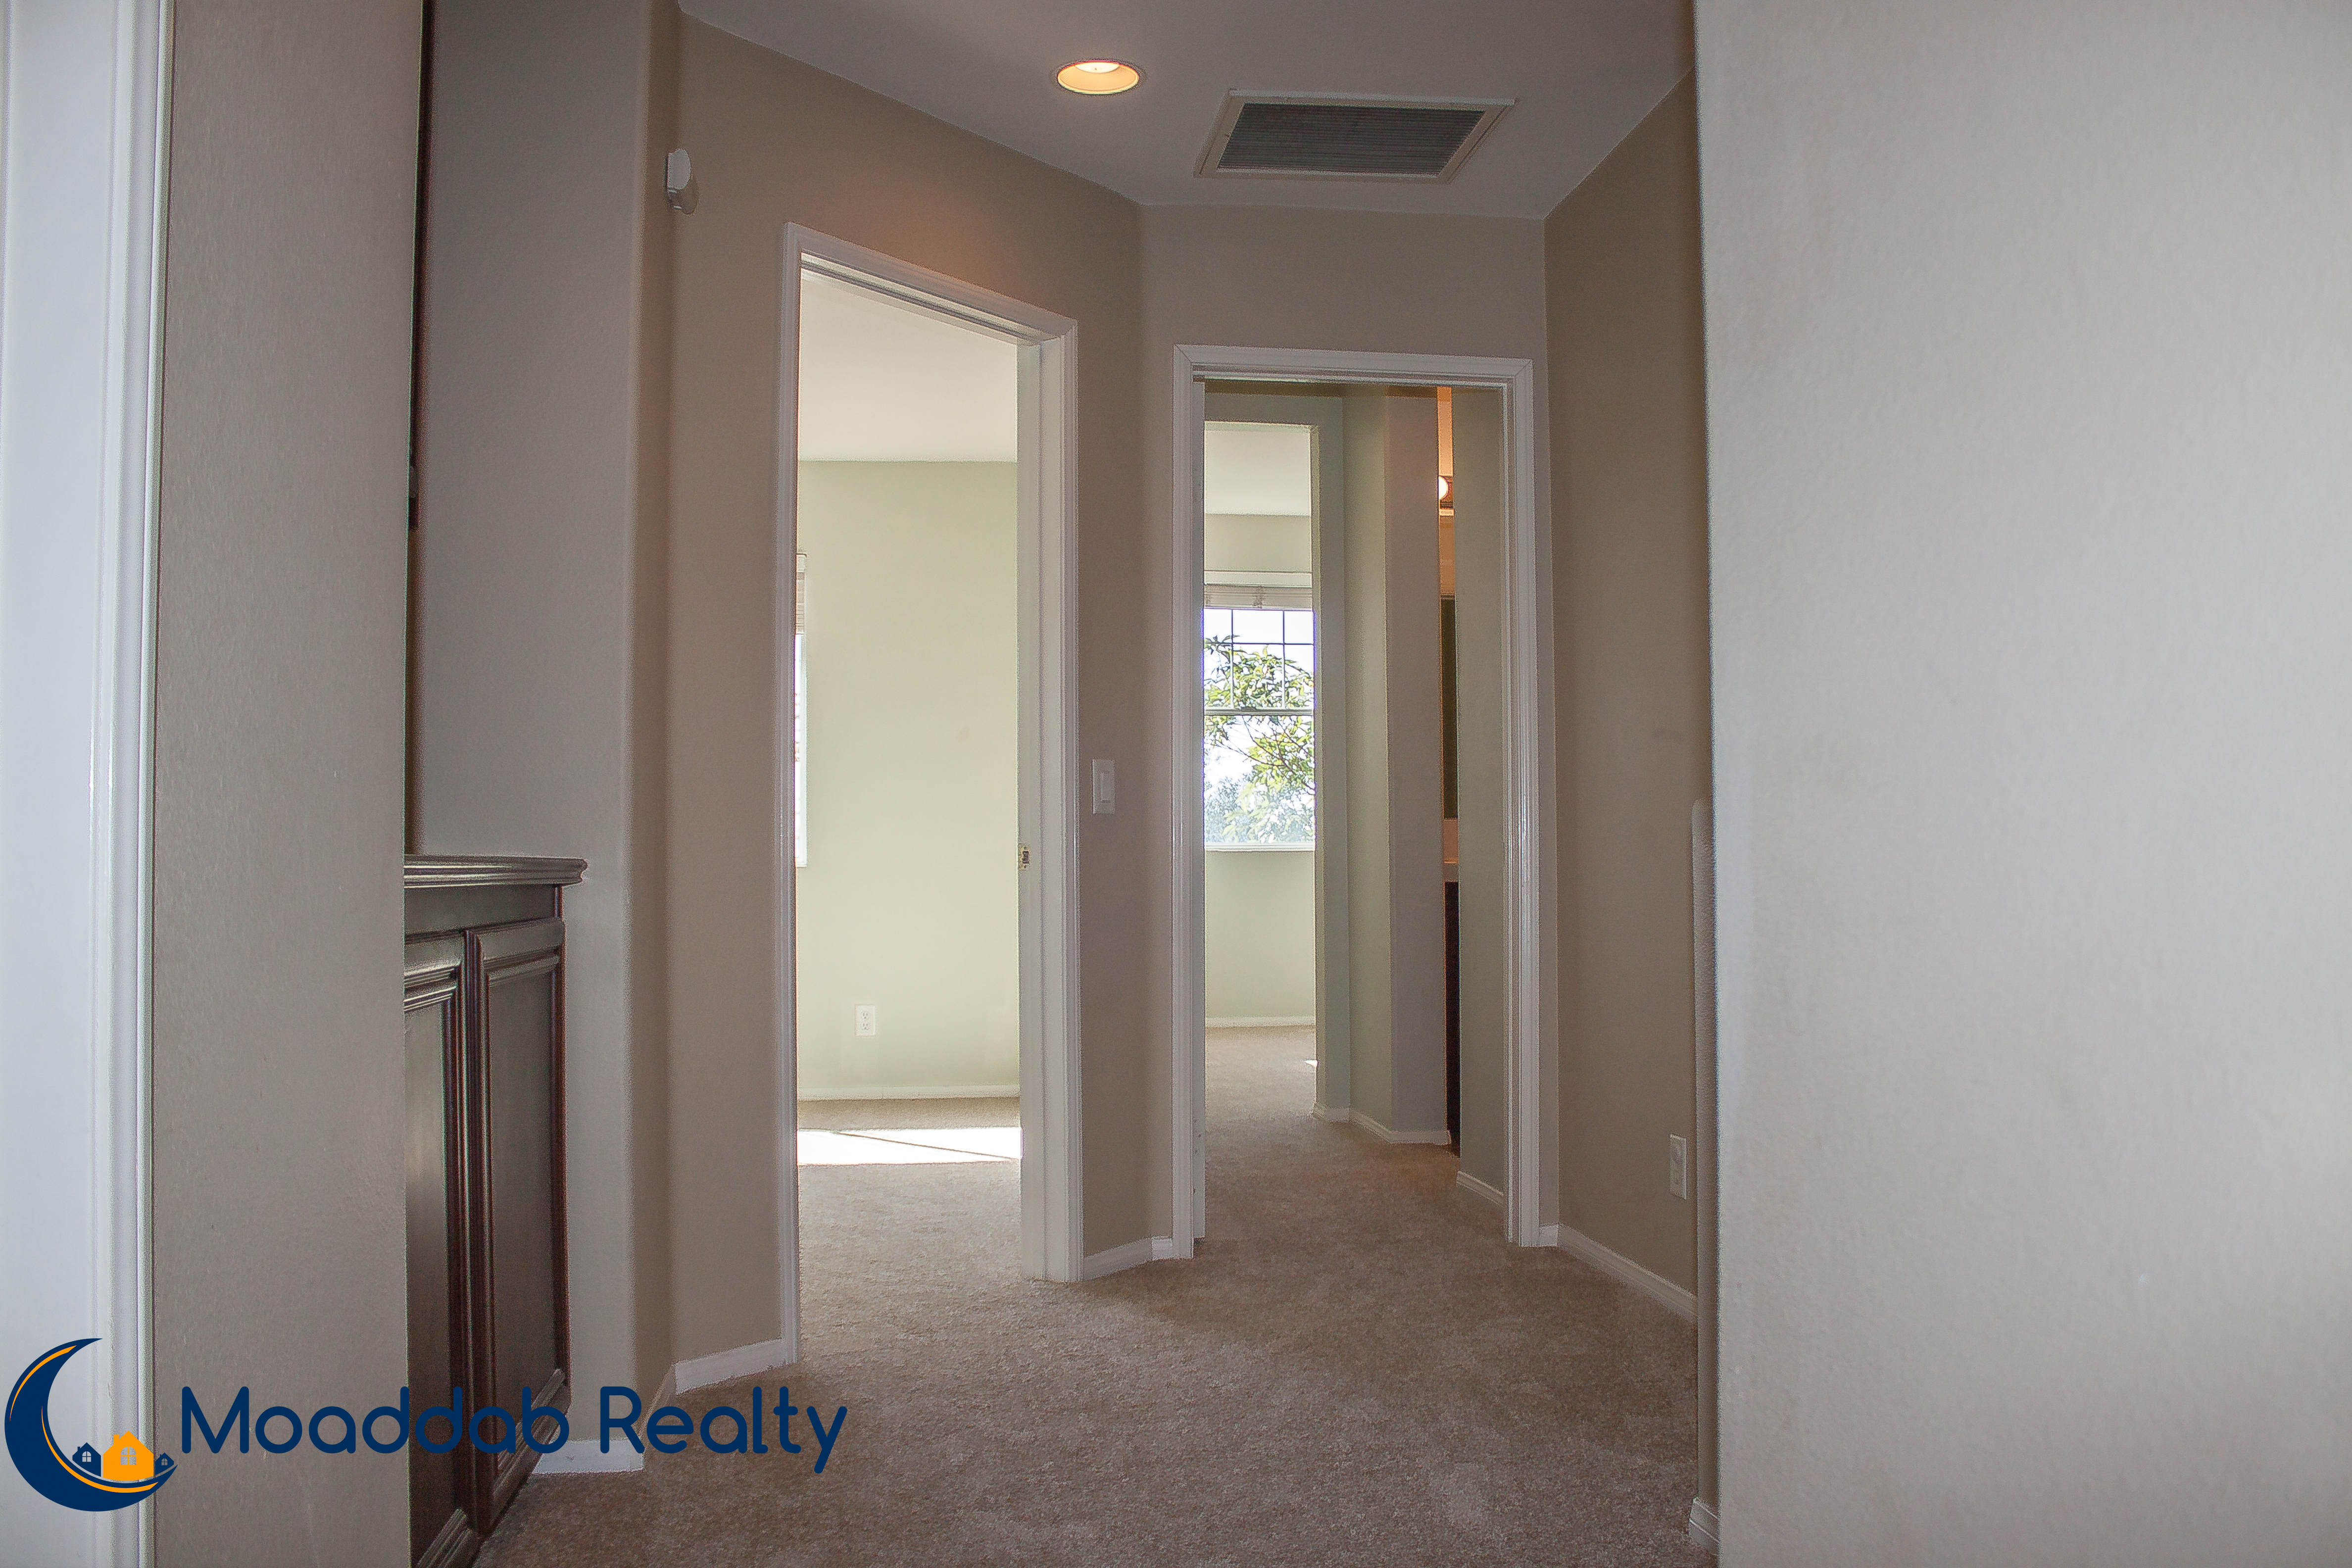 Hallway to All the Bedrooms